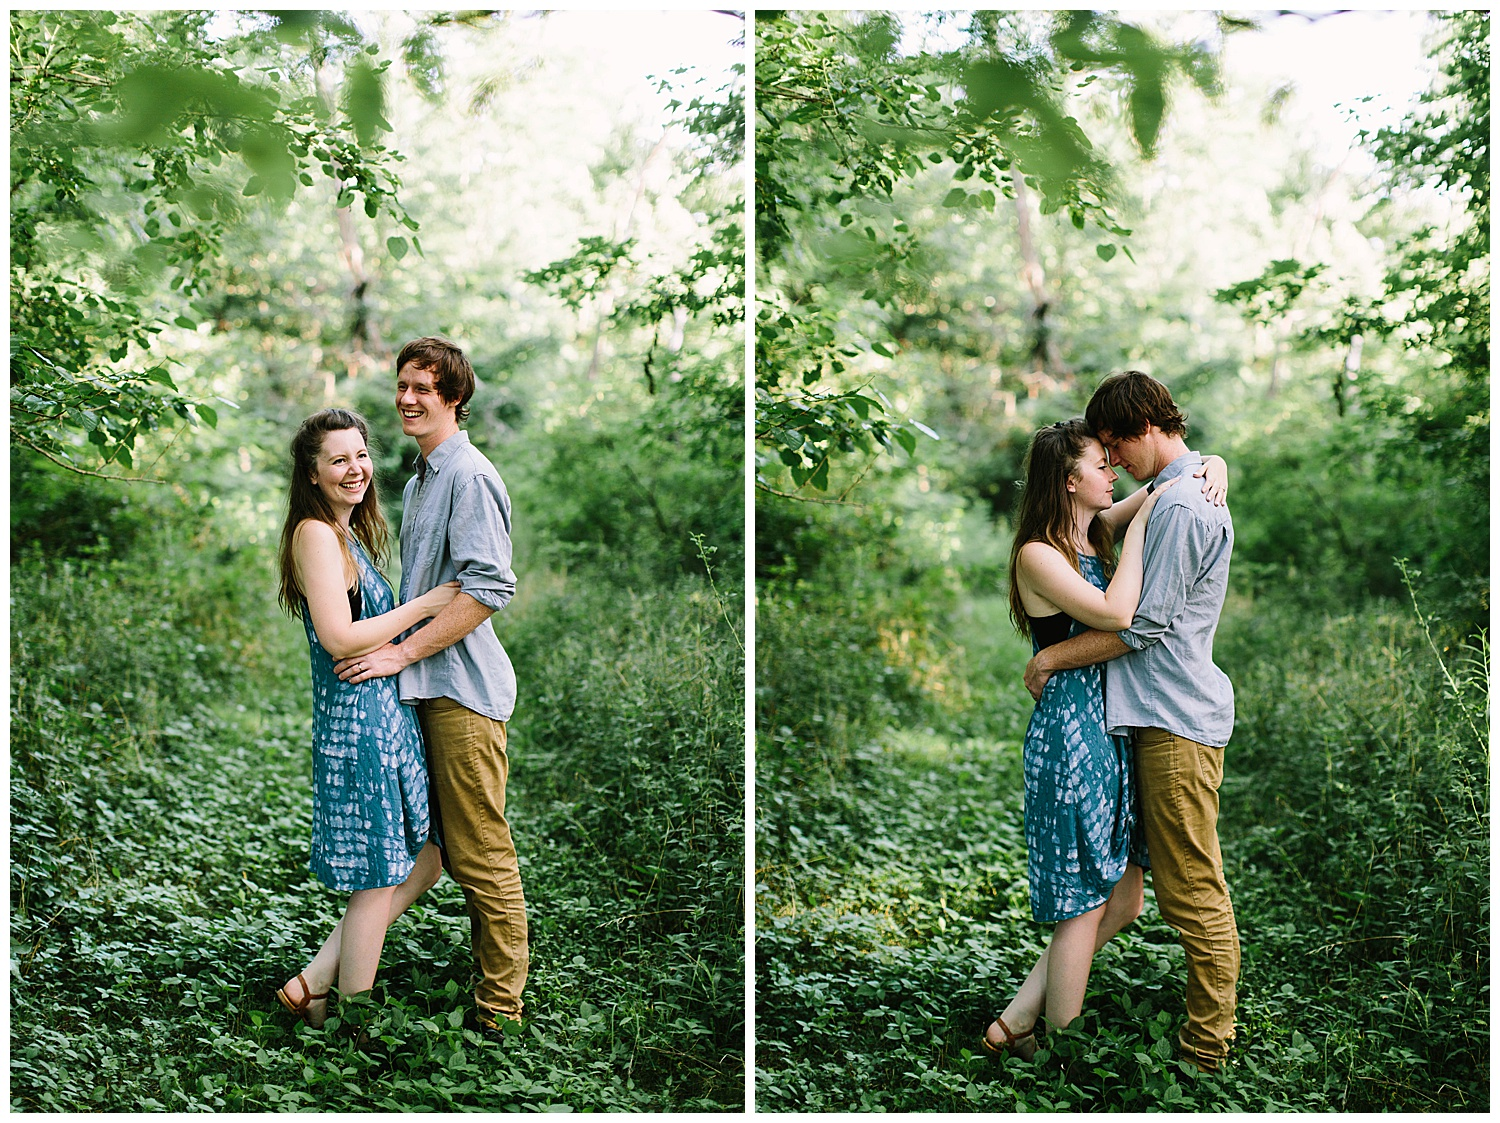 lavender.photoshoot.lavenderfarm.kentucky.engagement.anniversary.photography-21.jpg